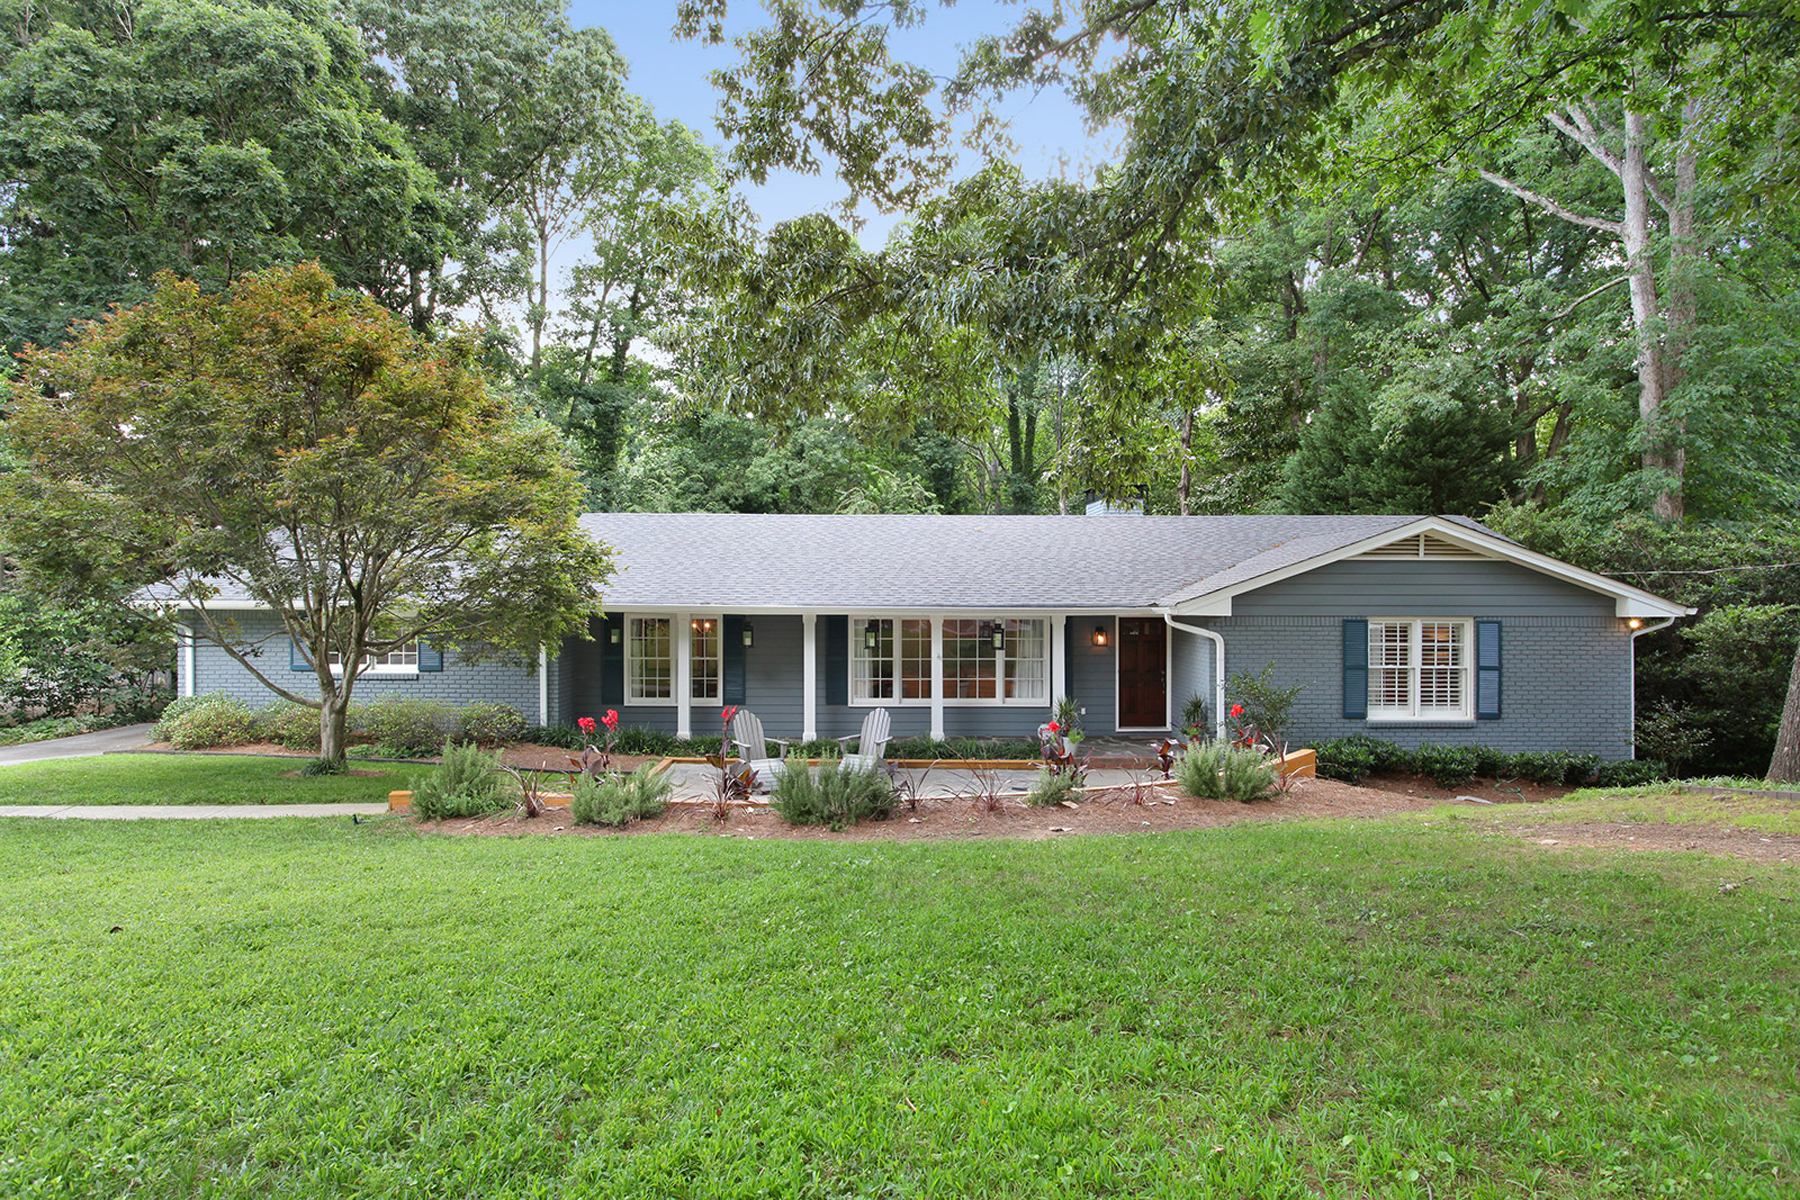 Single Family Home for Sale at Wonderful Renovation At Chastain 4610 Brook Hollow Drive NW Chastain Park, Atlanta, Georgia, 30327 United States